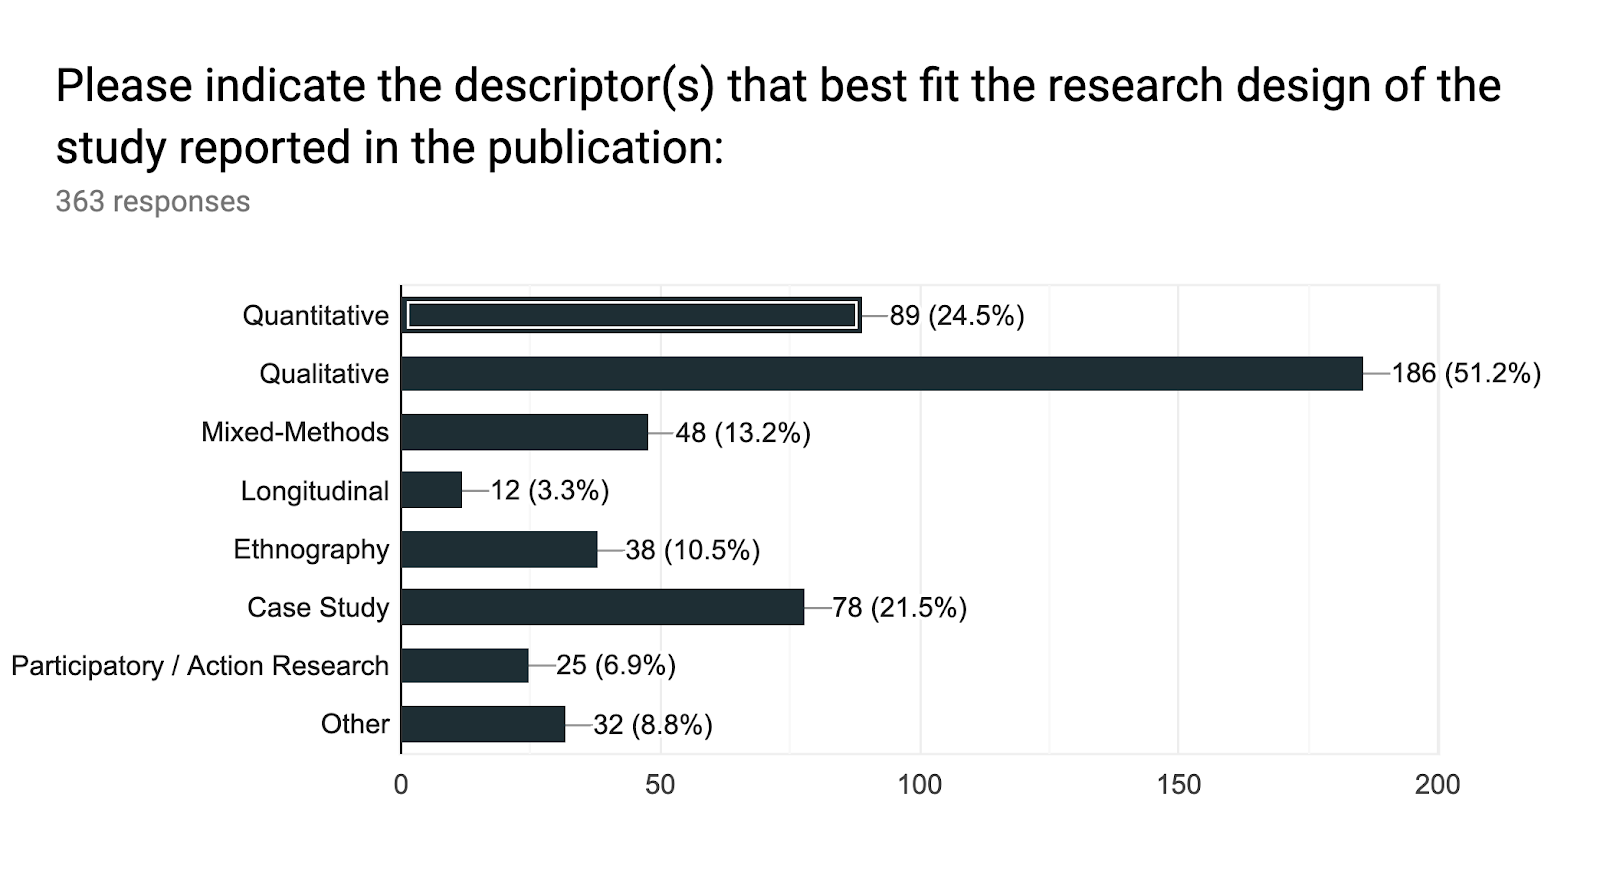 Forms response chart. Question title: Please indicate the descriptor(s) that best fit the research design of the study reported in the publication: . Number of responses: 363 responses.